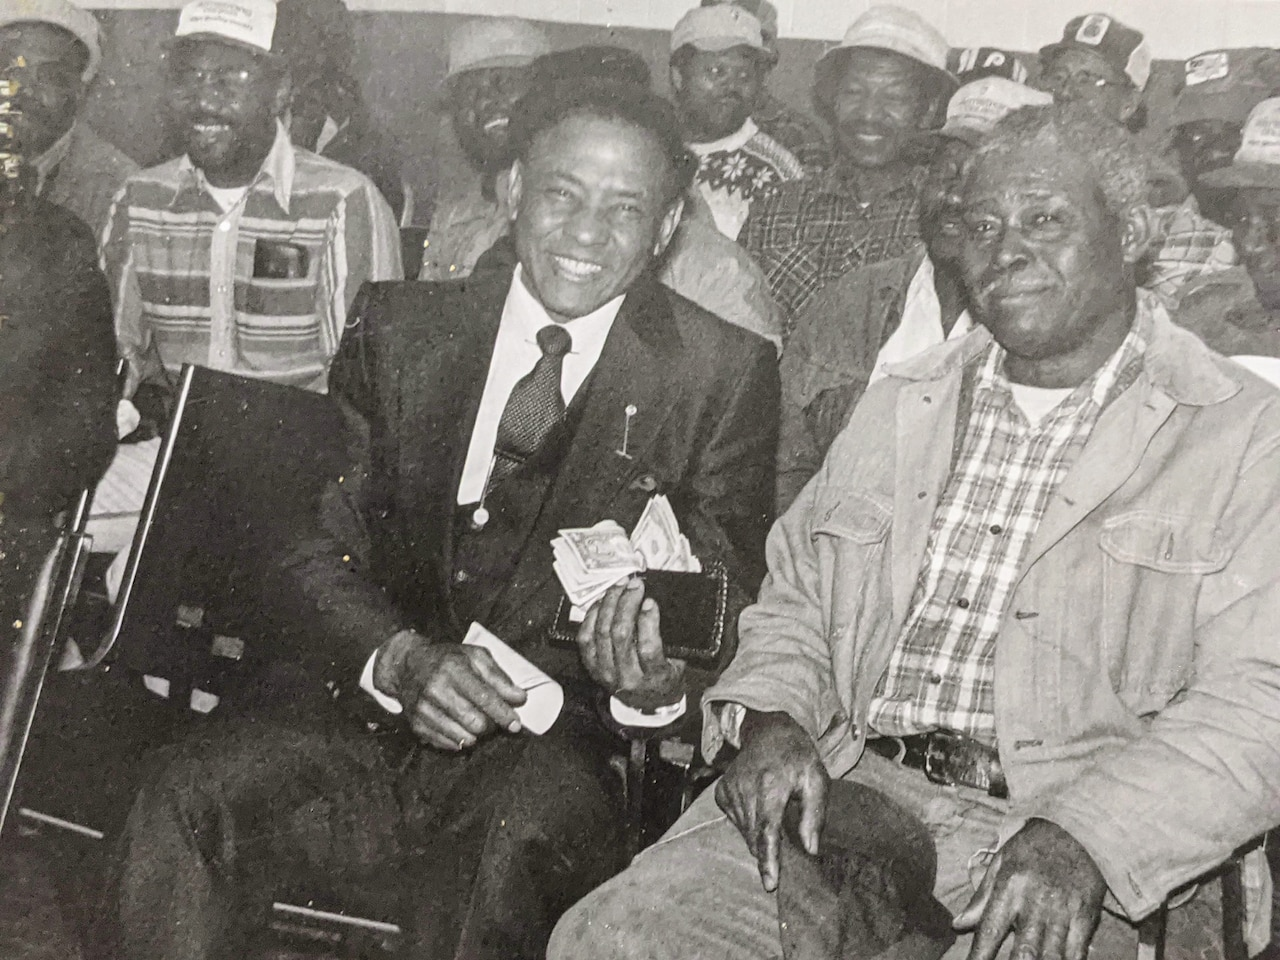 Several men sit grouped together. One smiles while holding up a wallet spilling over with cash.